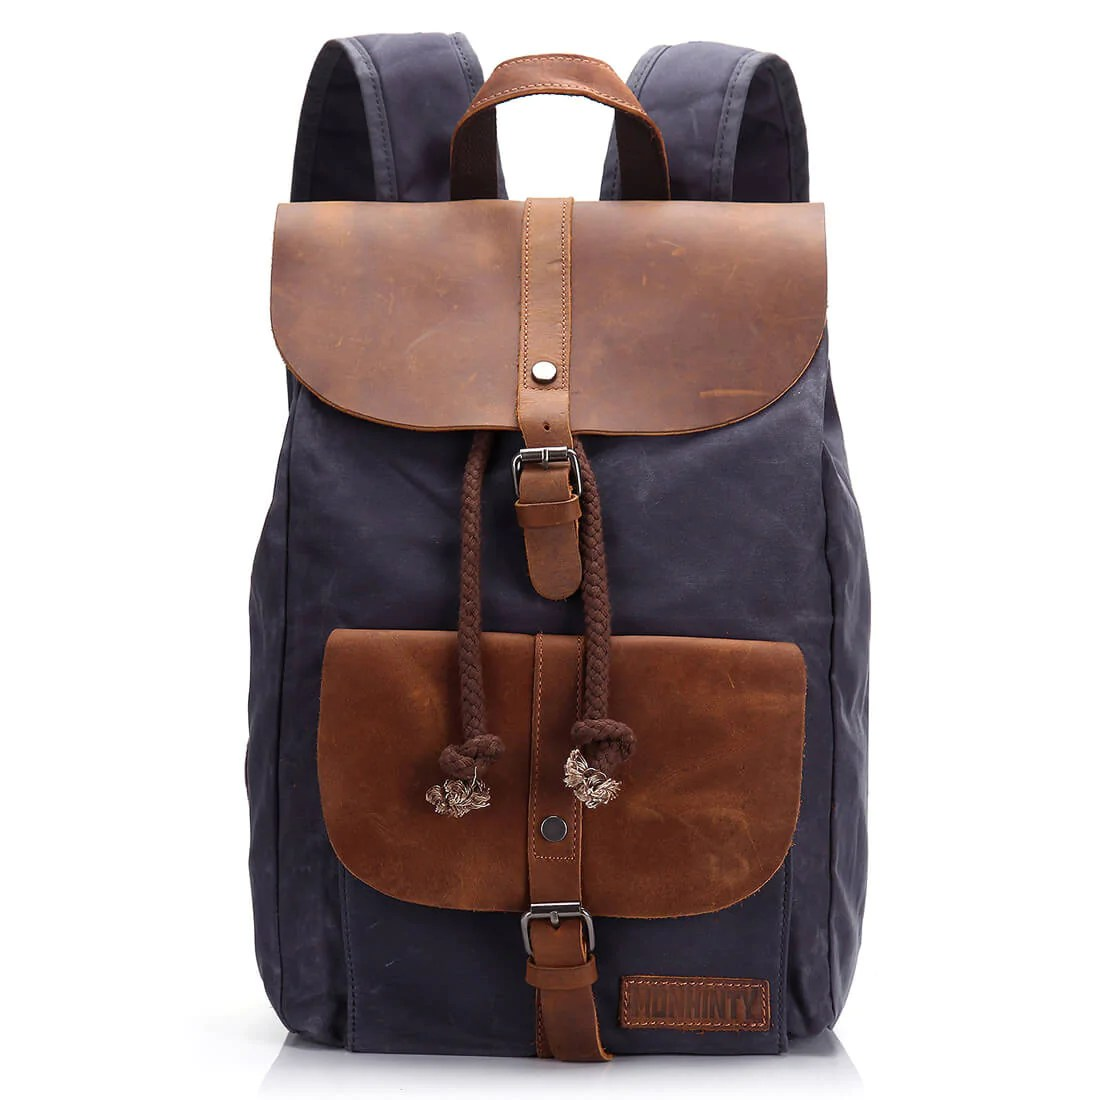 Travel Rucksack Waxed Canvas Leather Laptop Backpack 15 6 Inch Travel Rucksack